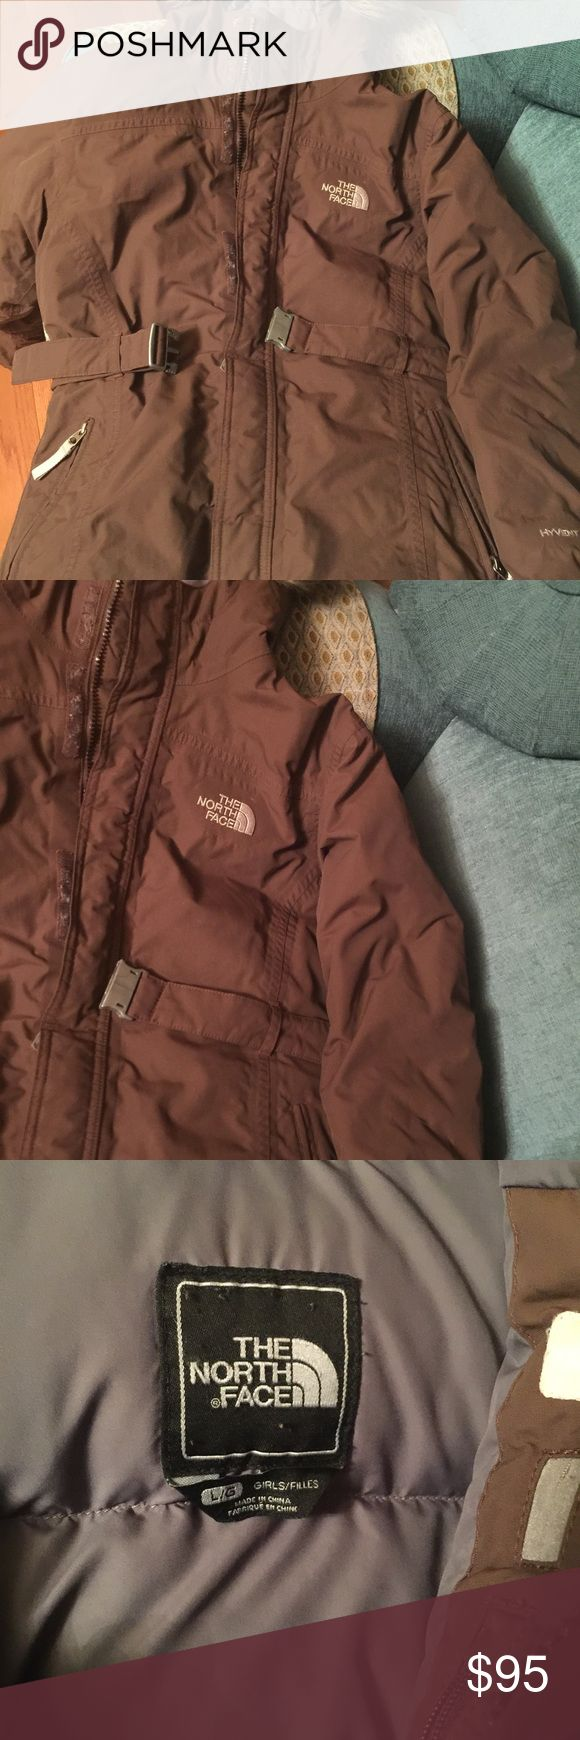 Authentic North face jacket Girls north face jacket purchased at Macy's North Face Jackets & Coats Puffers